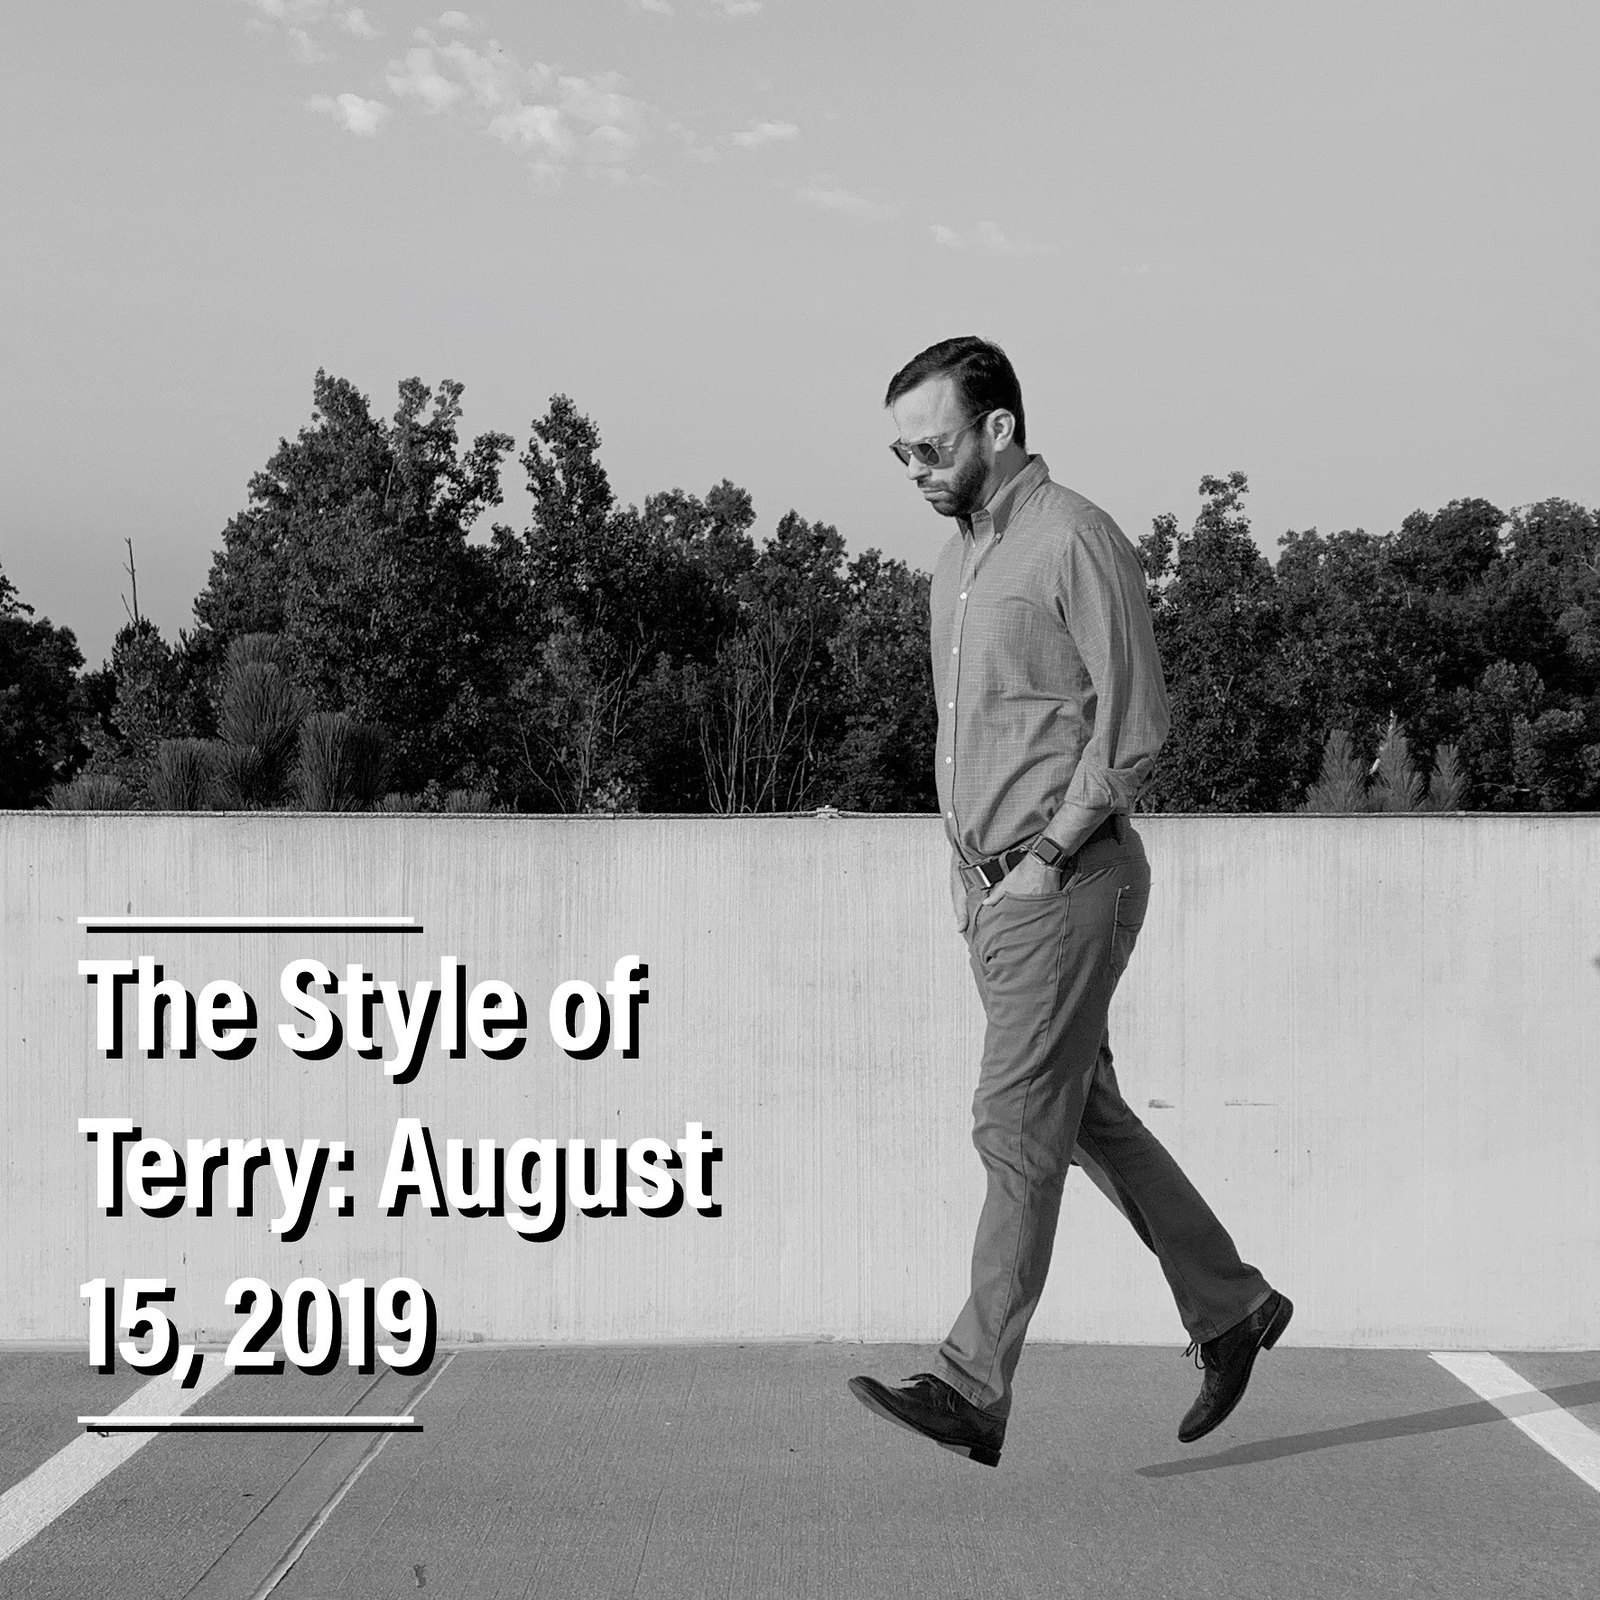 The Style of Terry: 8.15.19